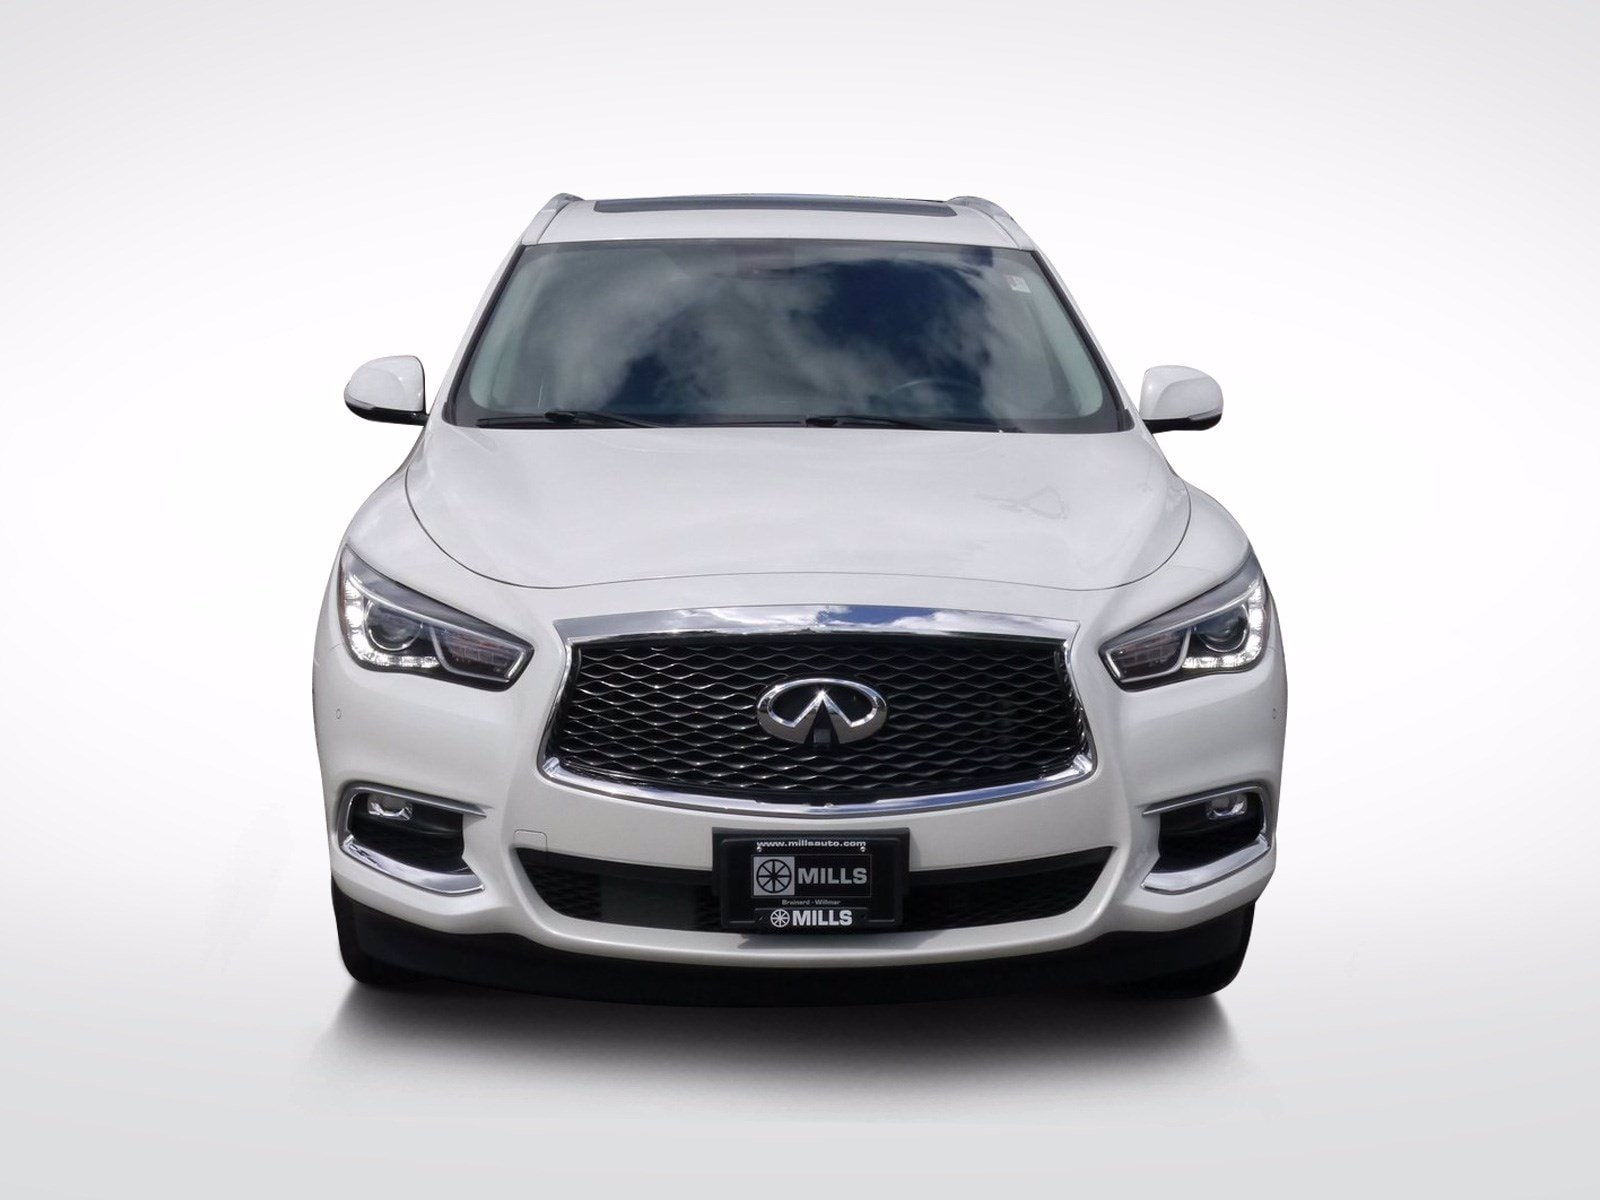 Used 2017 INFINITI QX60  with VIN 5N1DL0MMXHC551869 for sale in Baxter, Minnesota